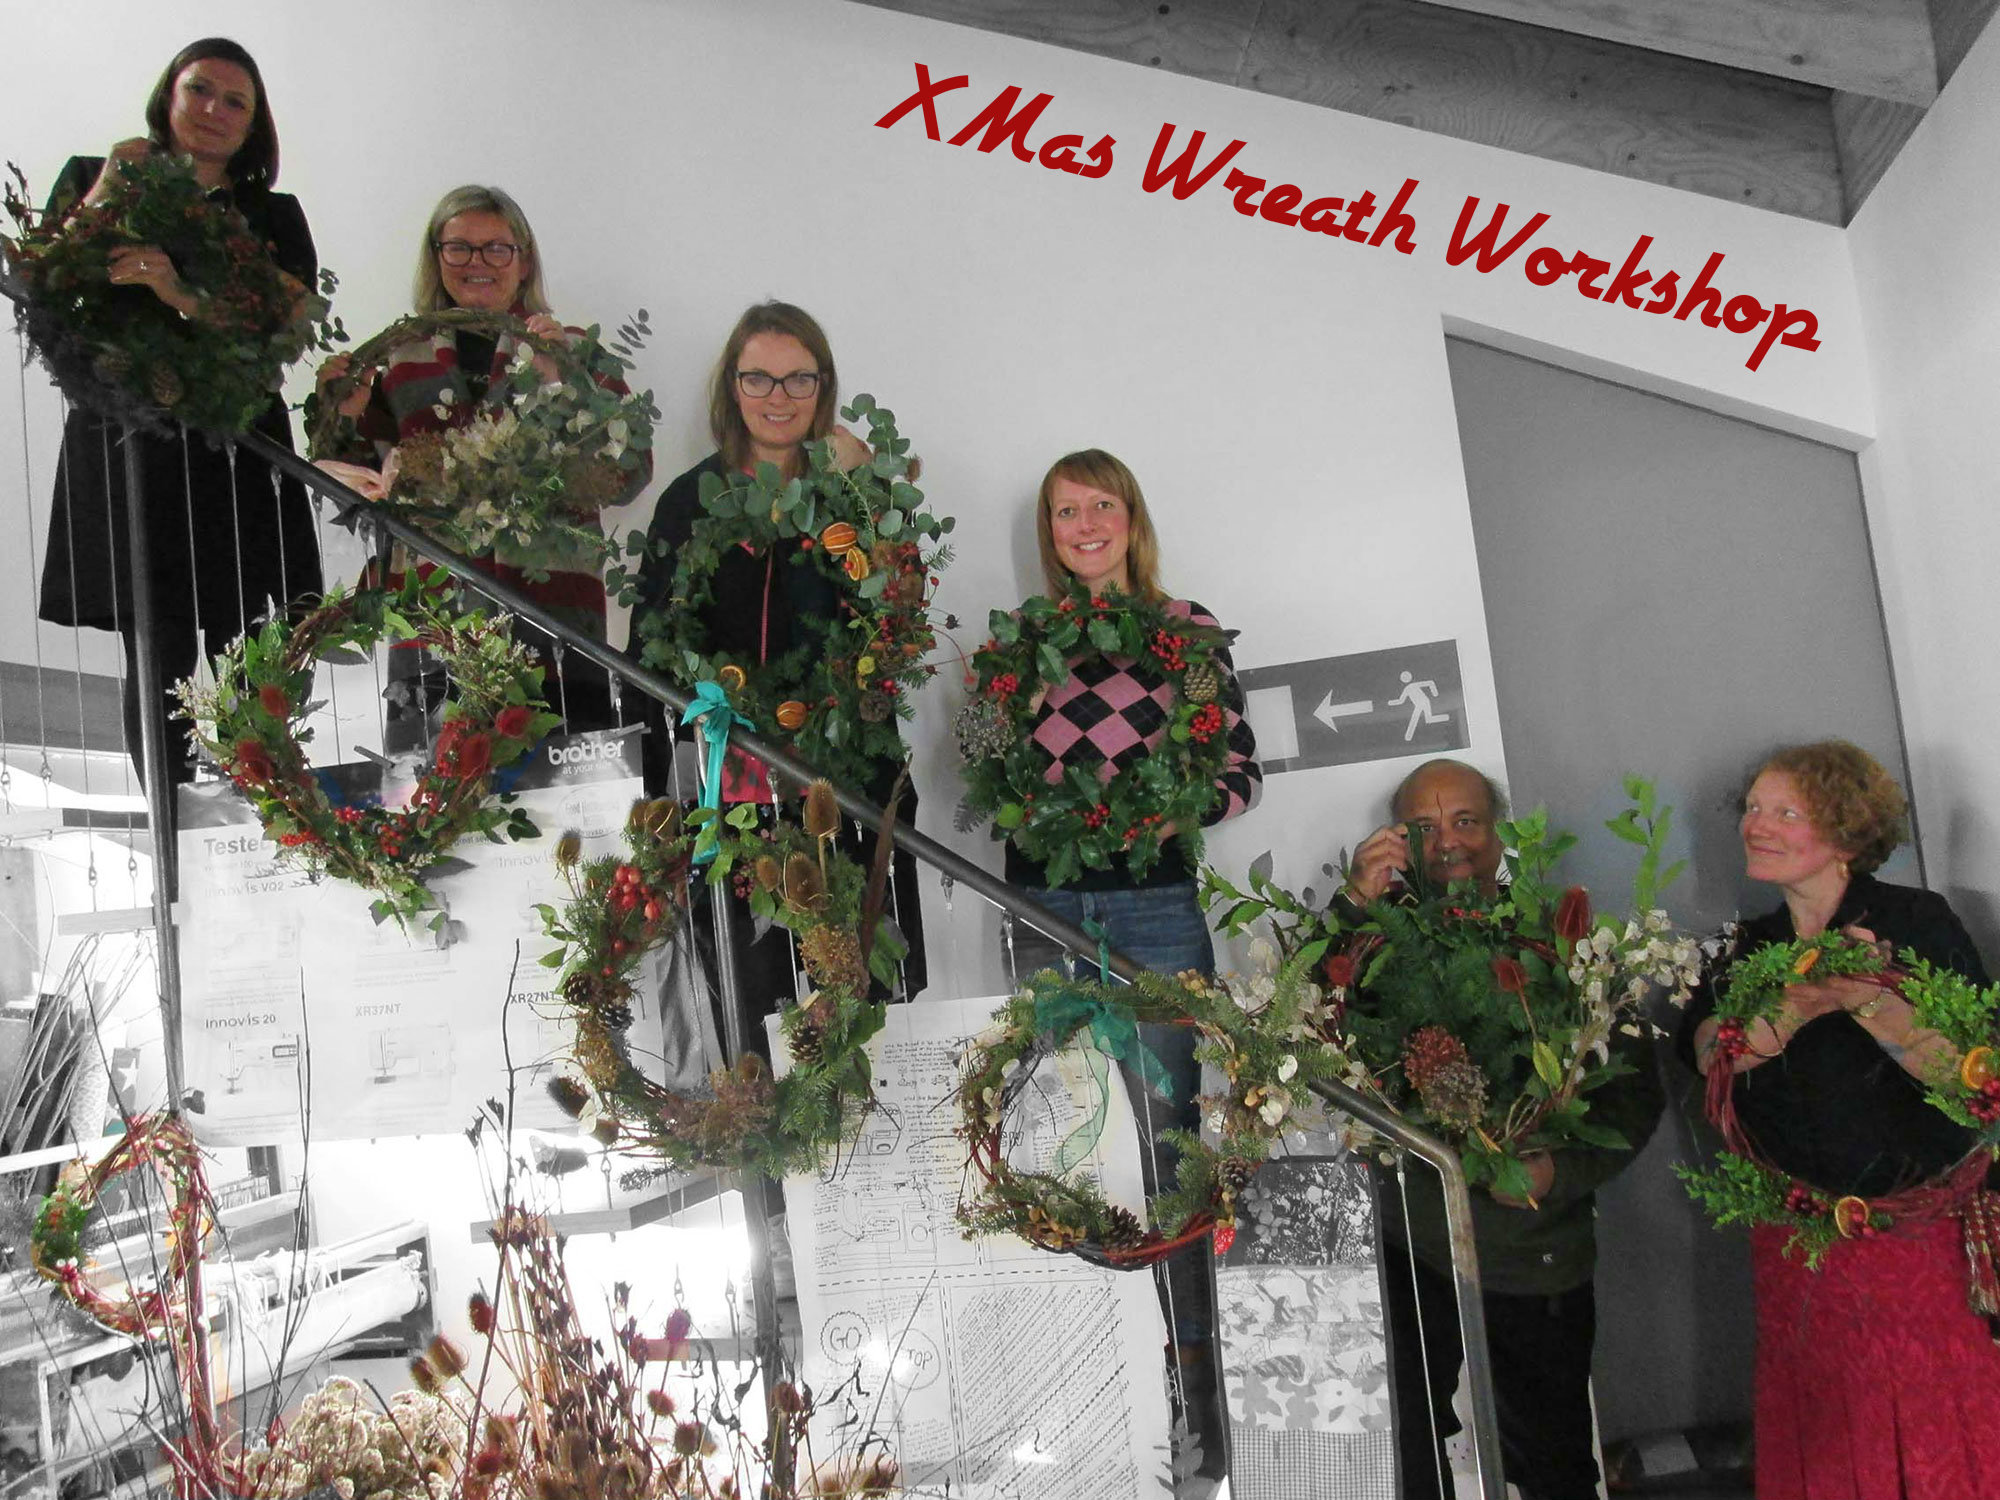 xmas wreath workshop by damaris designs